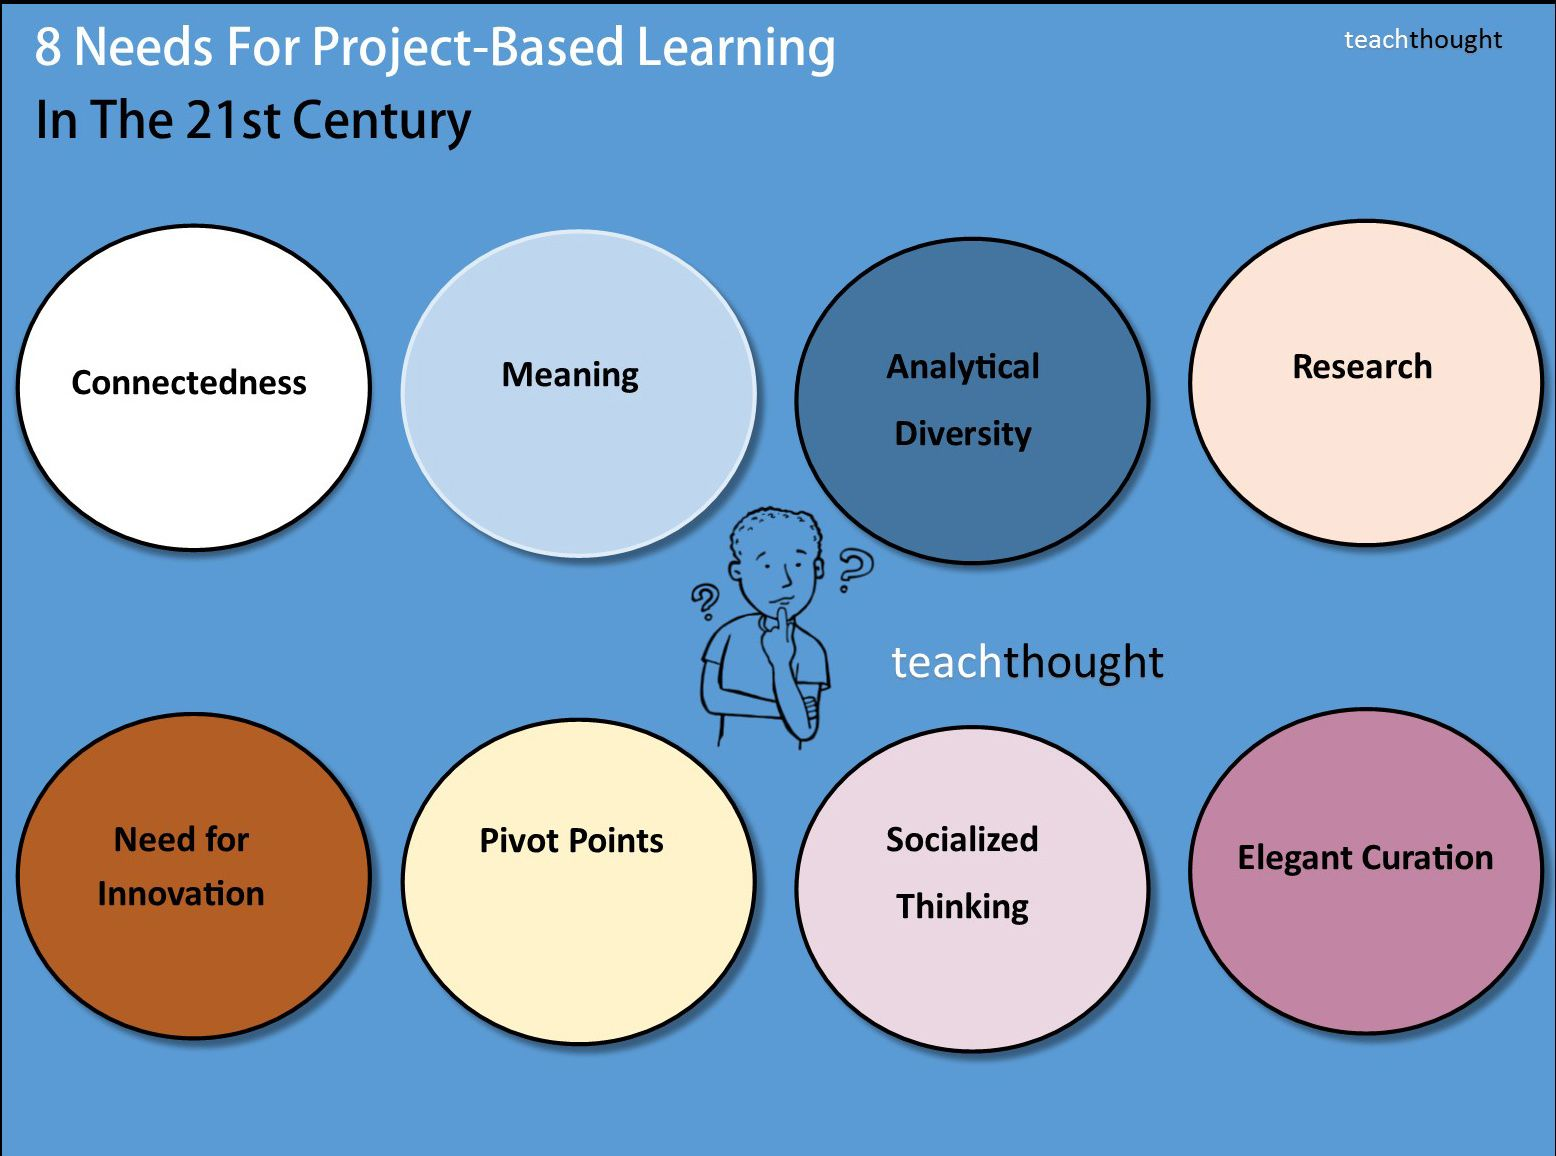 8 needs for project-based learning which include connectedness and social thinking